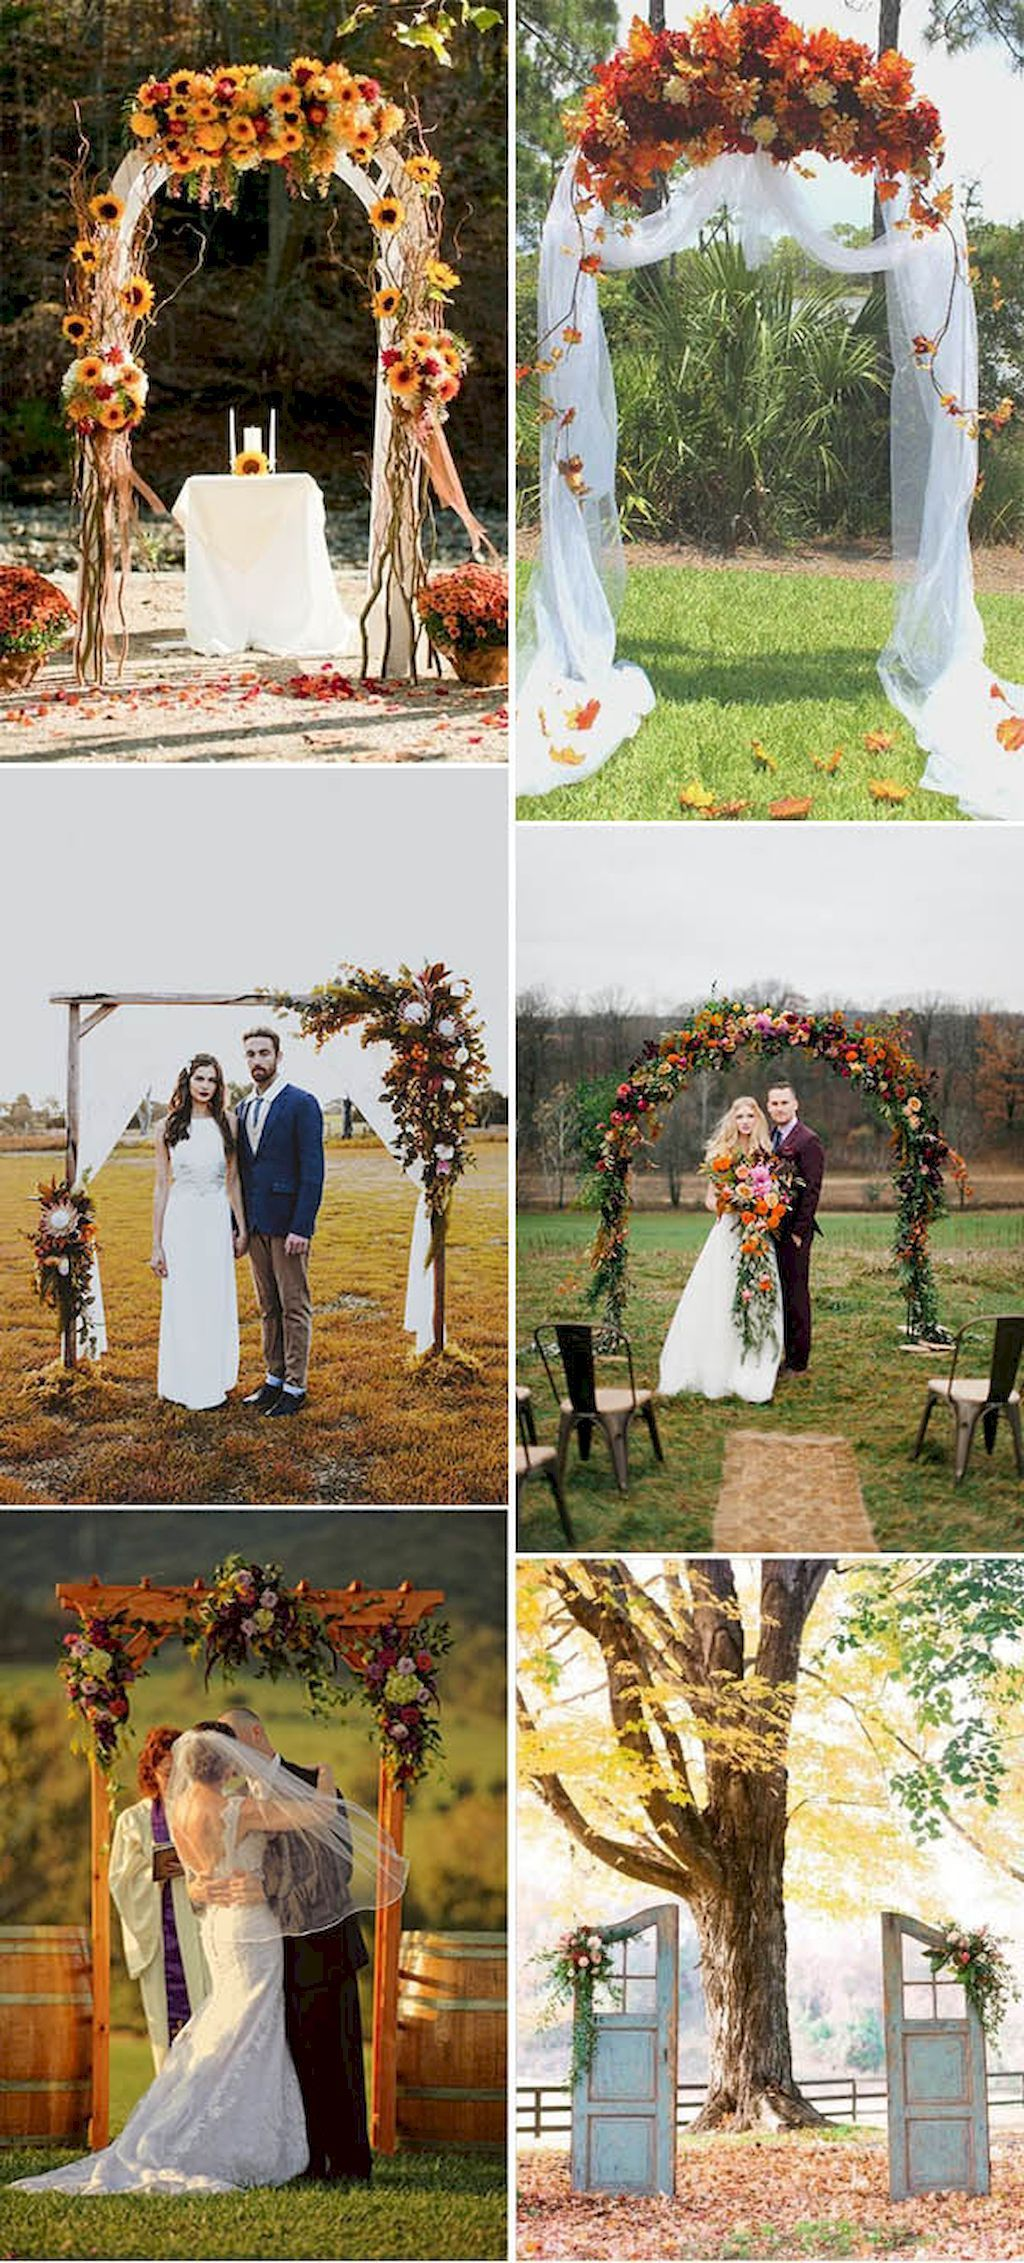 Fall outdoor wedding ideas on a budget (24) (With images ...